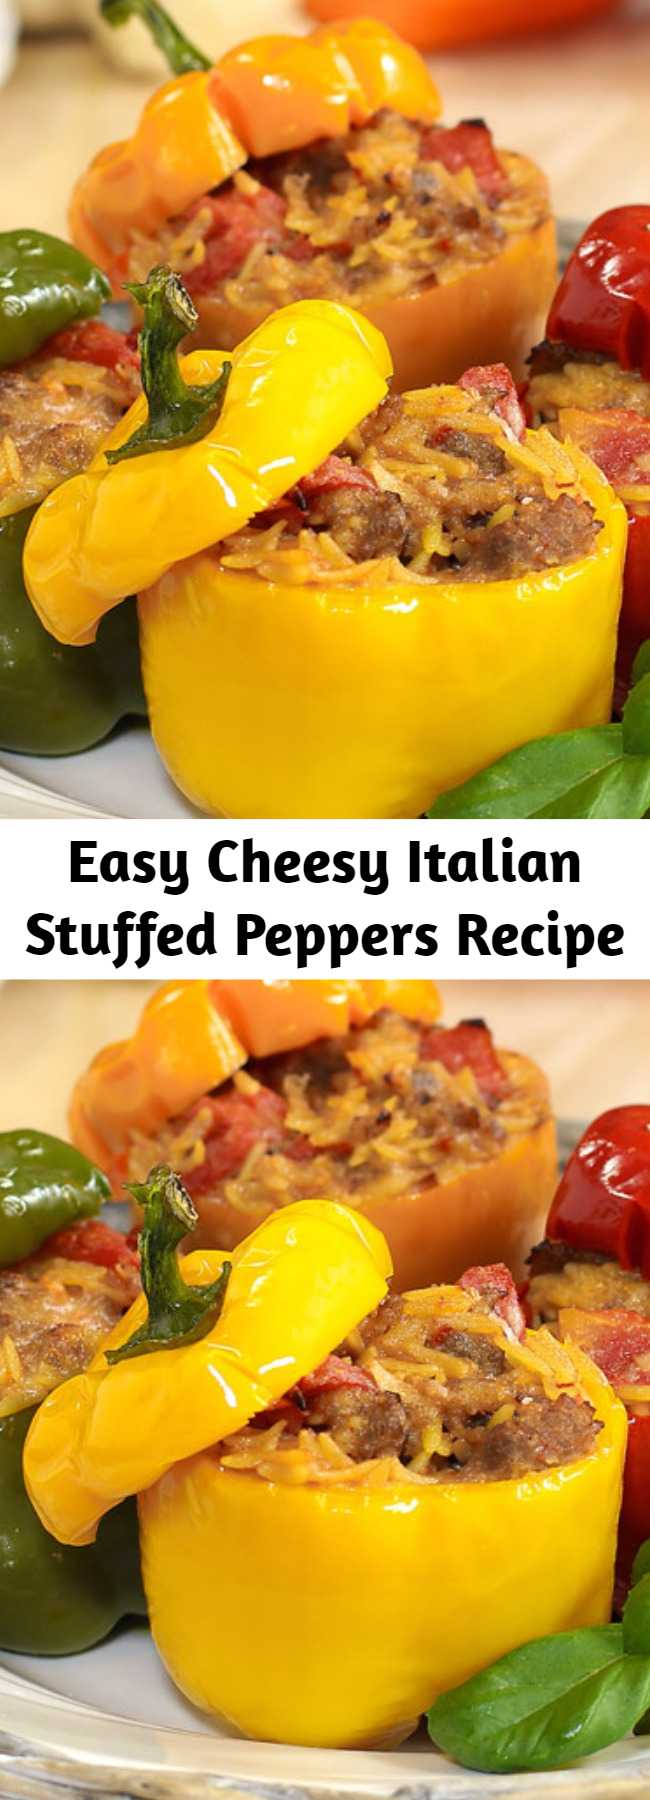 Easy Cheesy Italian Stuffed Peppers Recipe - Cheesy Italian Stuffed Peppers start with cheesy Italian sausage, fire-roasted tomatoes, and orzo pasta. It only gets better from there. An easy recipe that goes from prep to plate in 30 minutes makes this one a keeper! #stuffedpeppers #30minutemeals